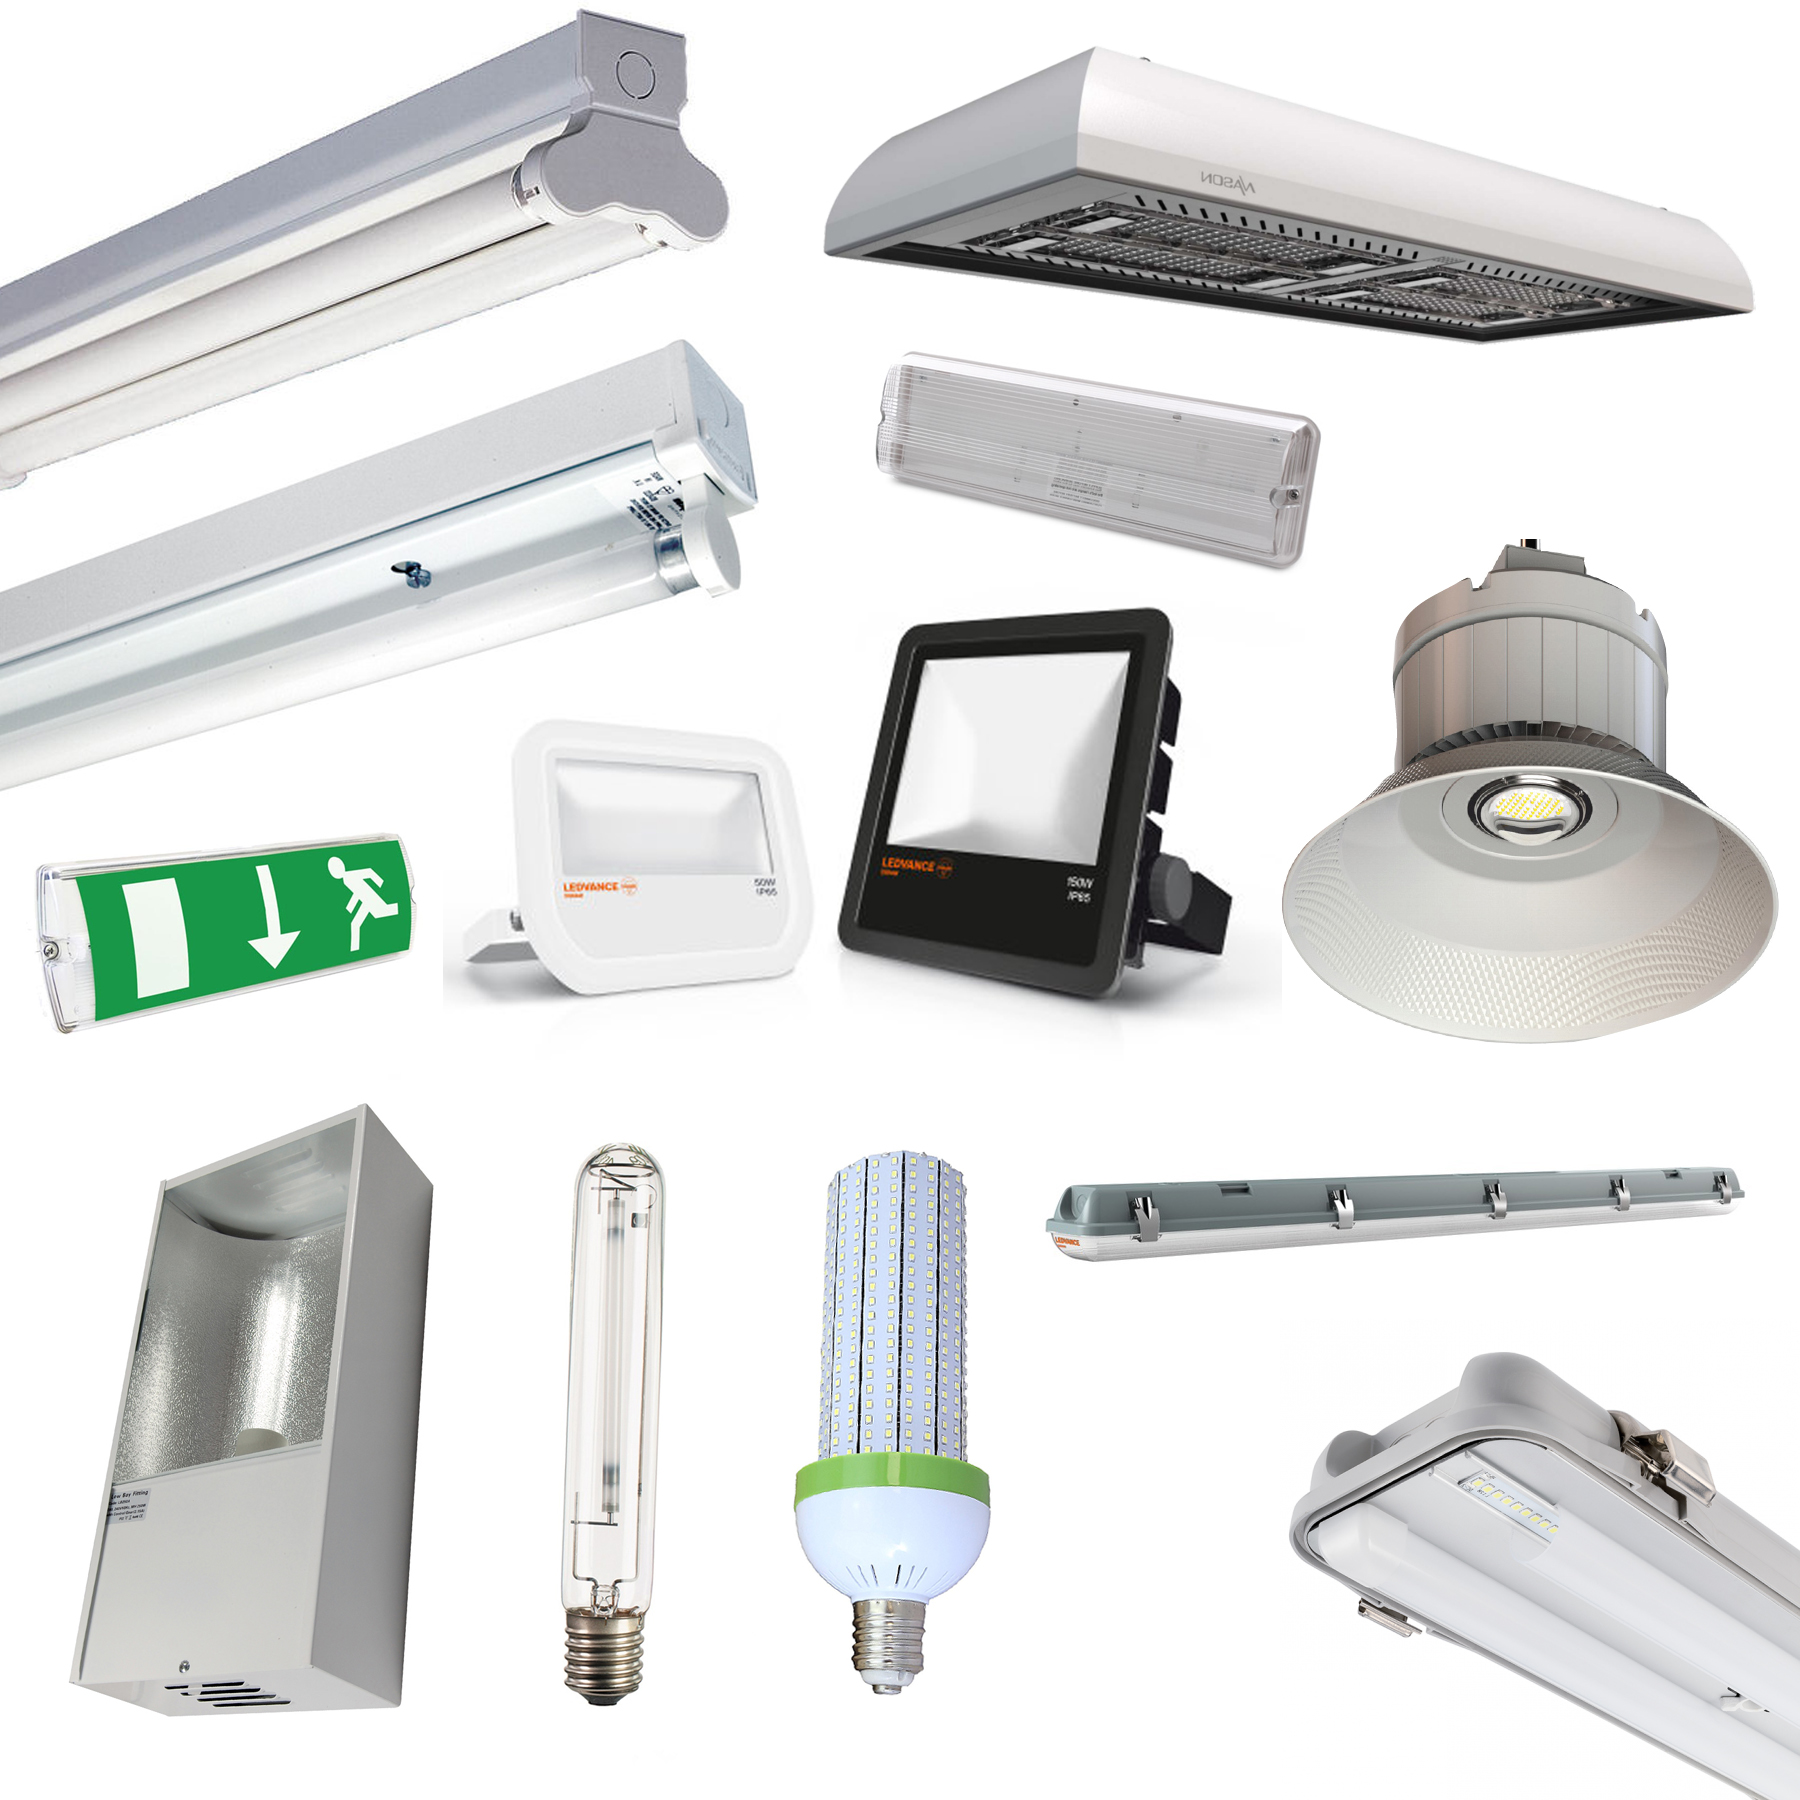 Warehouse LED Lighting T8 Fluorescent Fittings, LowBay